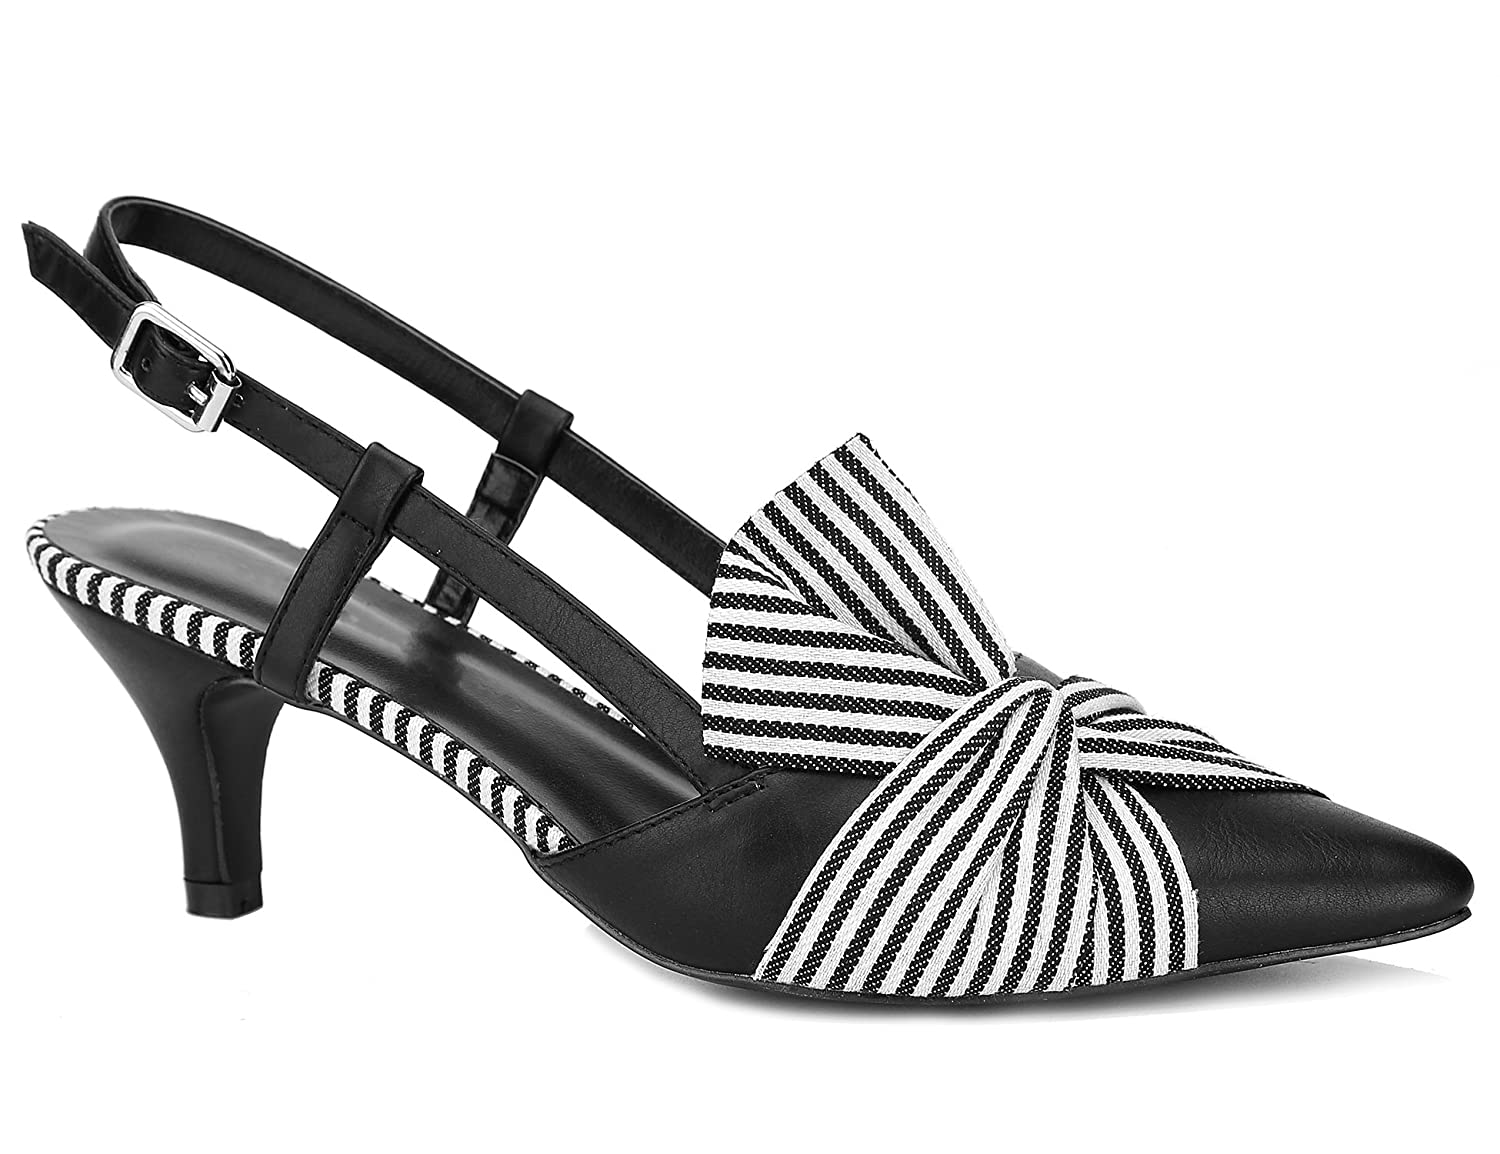 Black With Stripe Bow Tie Greatonu Womens Slingback Kitten Dress Pump